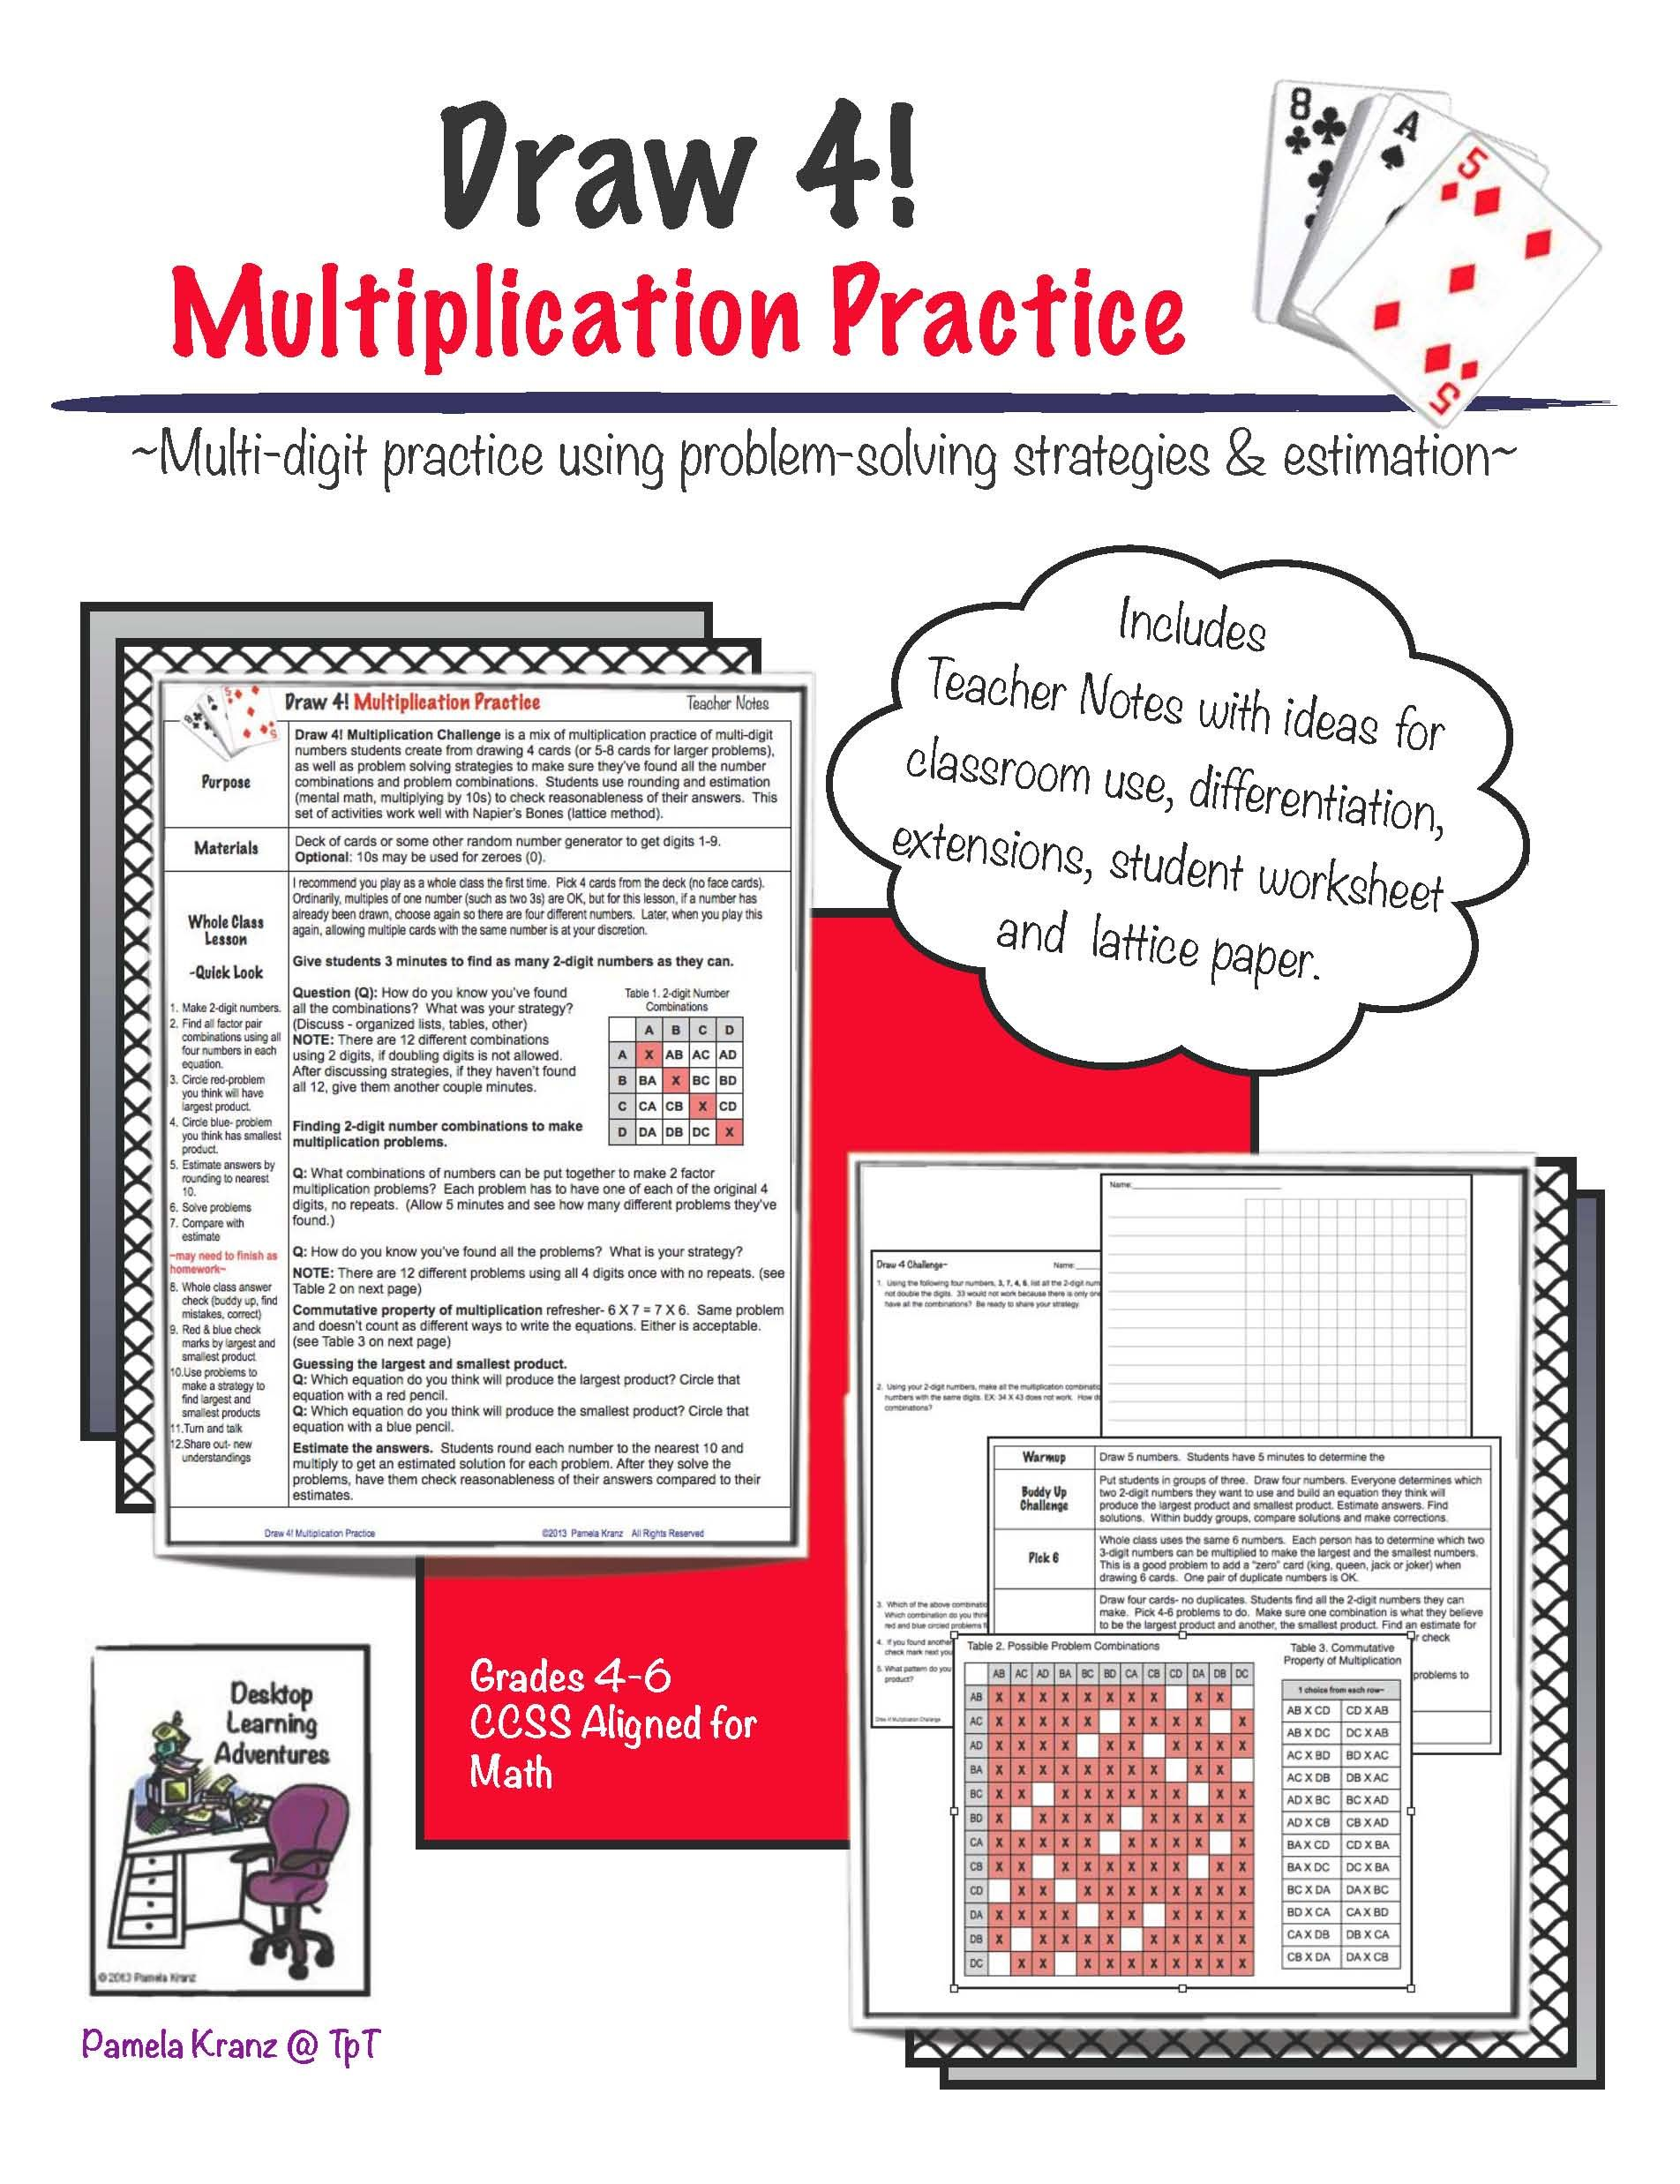 Multiplication Practice Activities Amp Games Draw 4